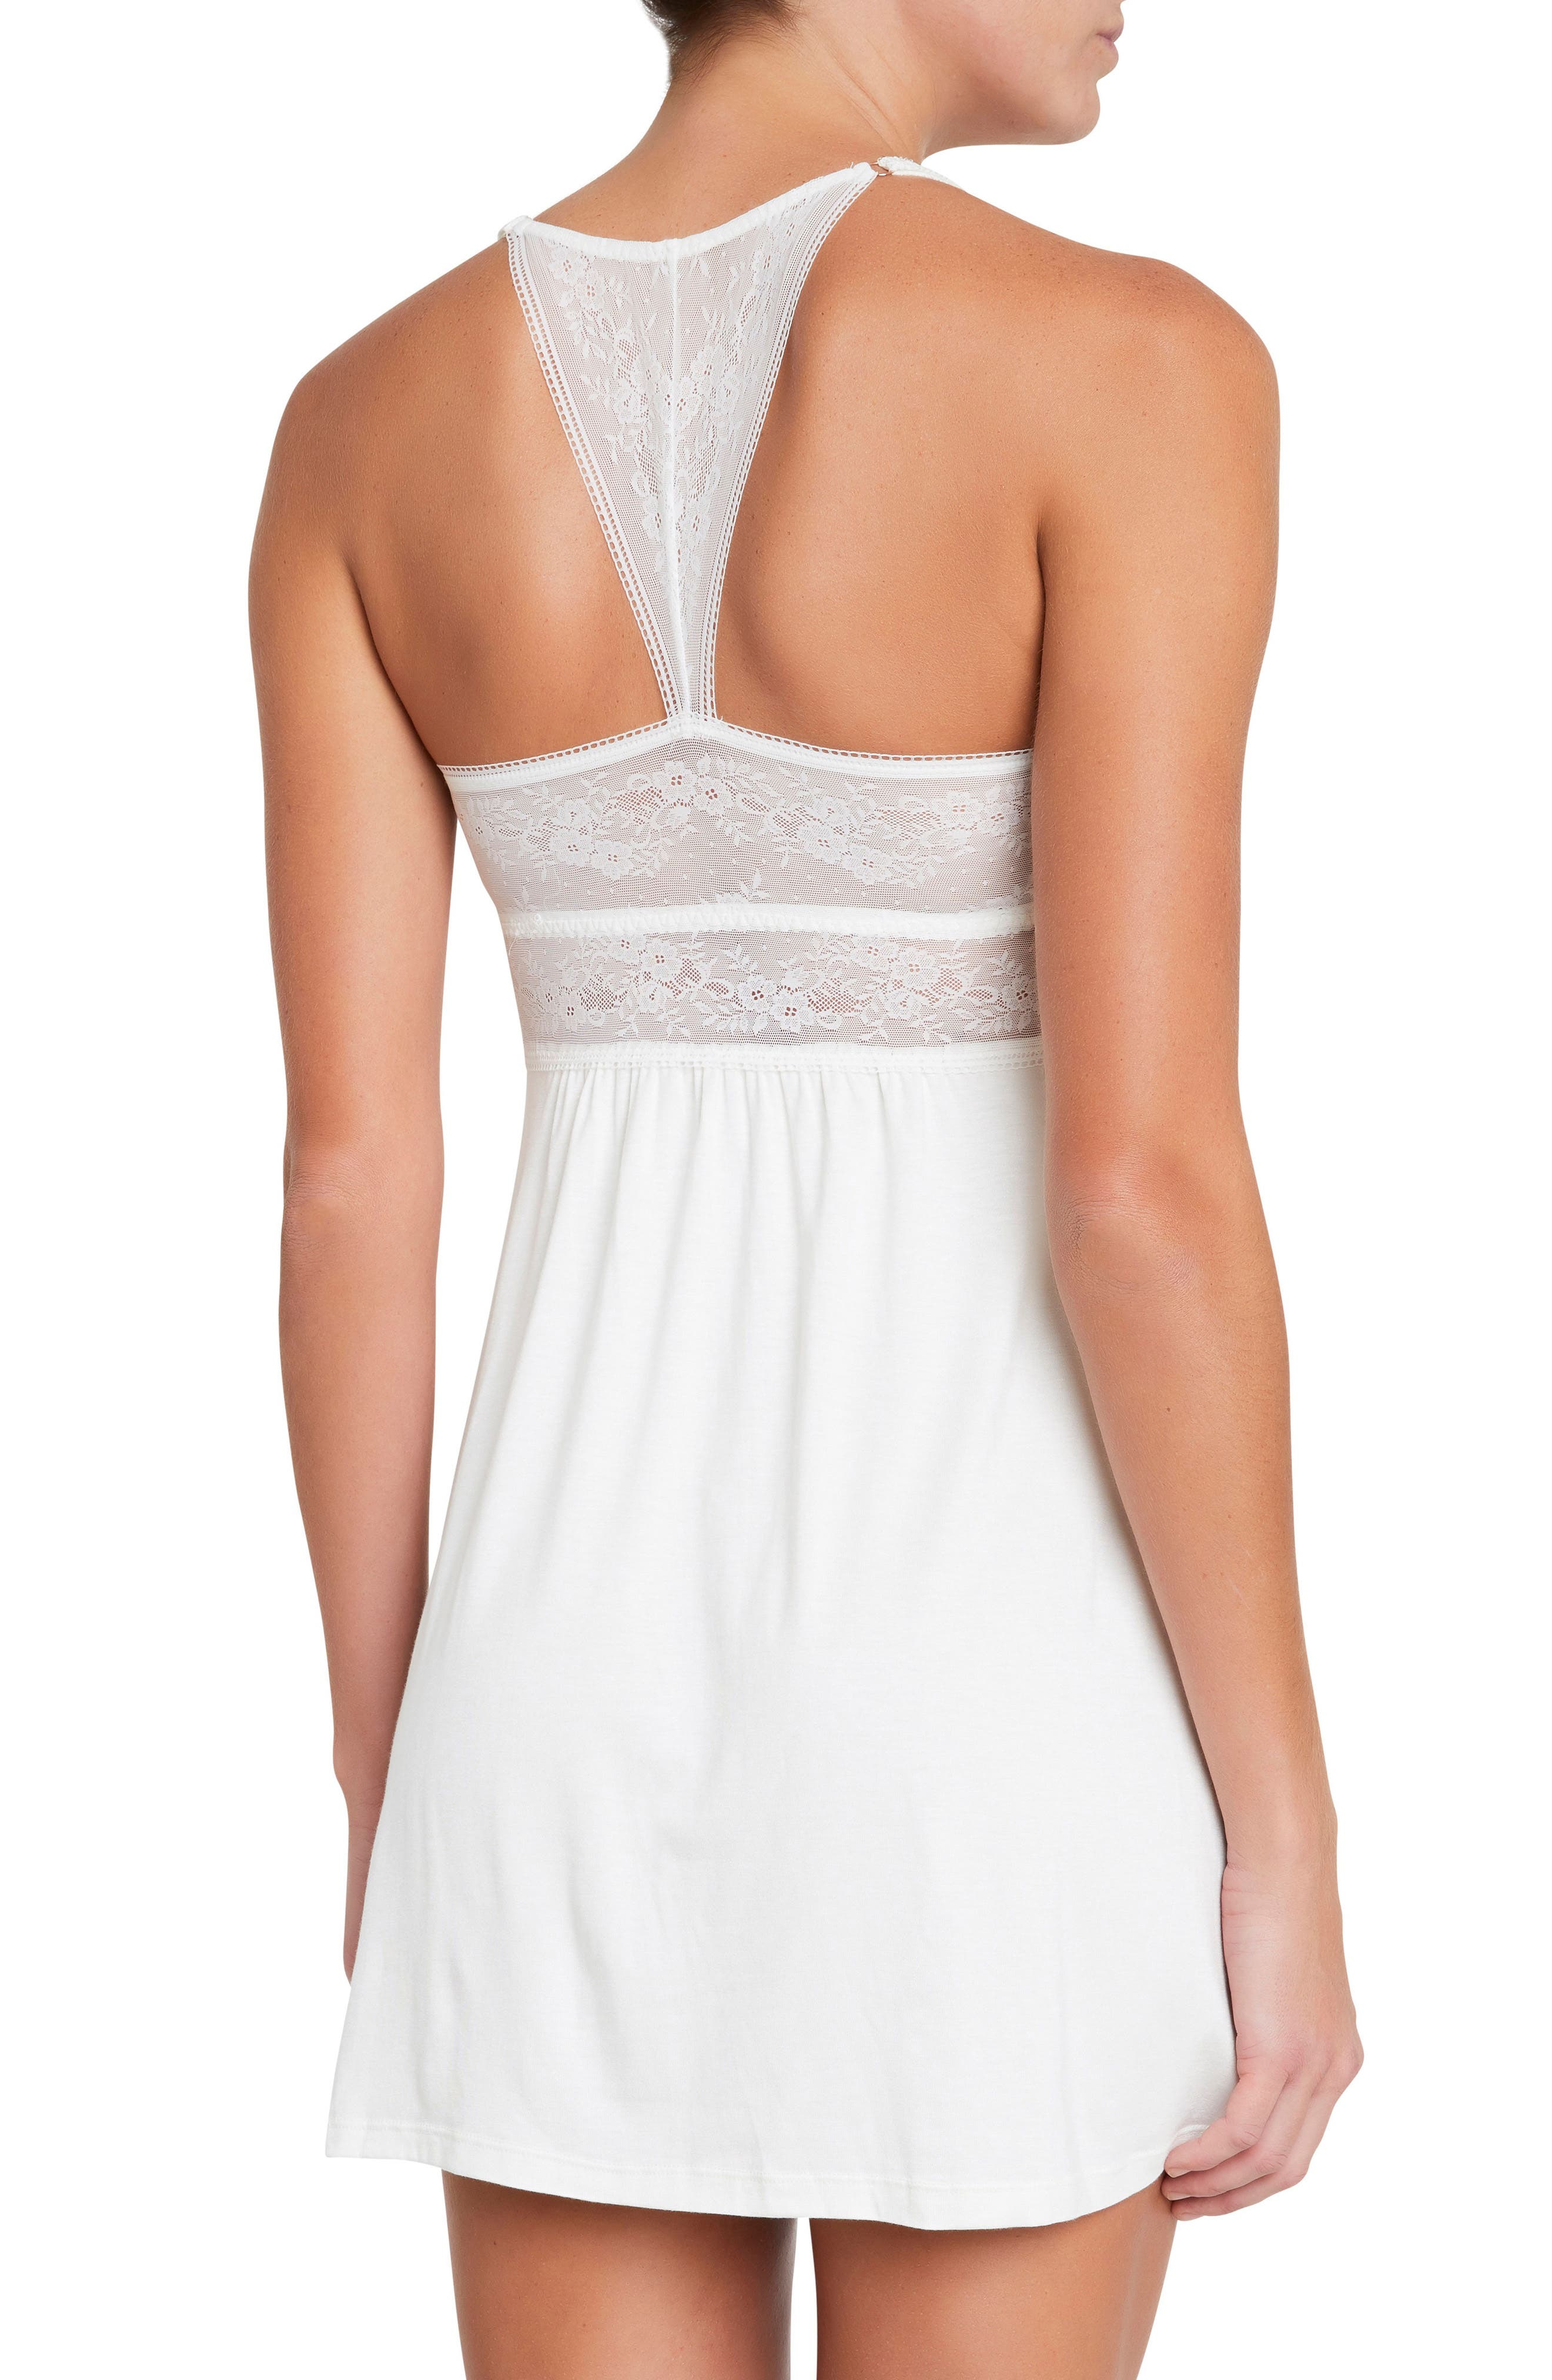 Adora the Adjustable Racerback Chemise,                             Alternate thumbnail 2, color,                             IVORY